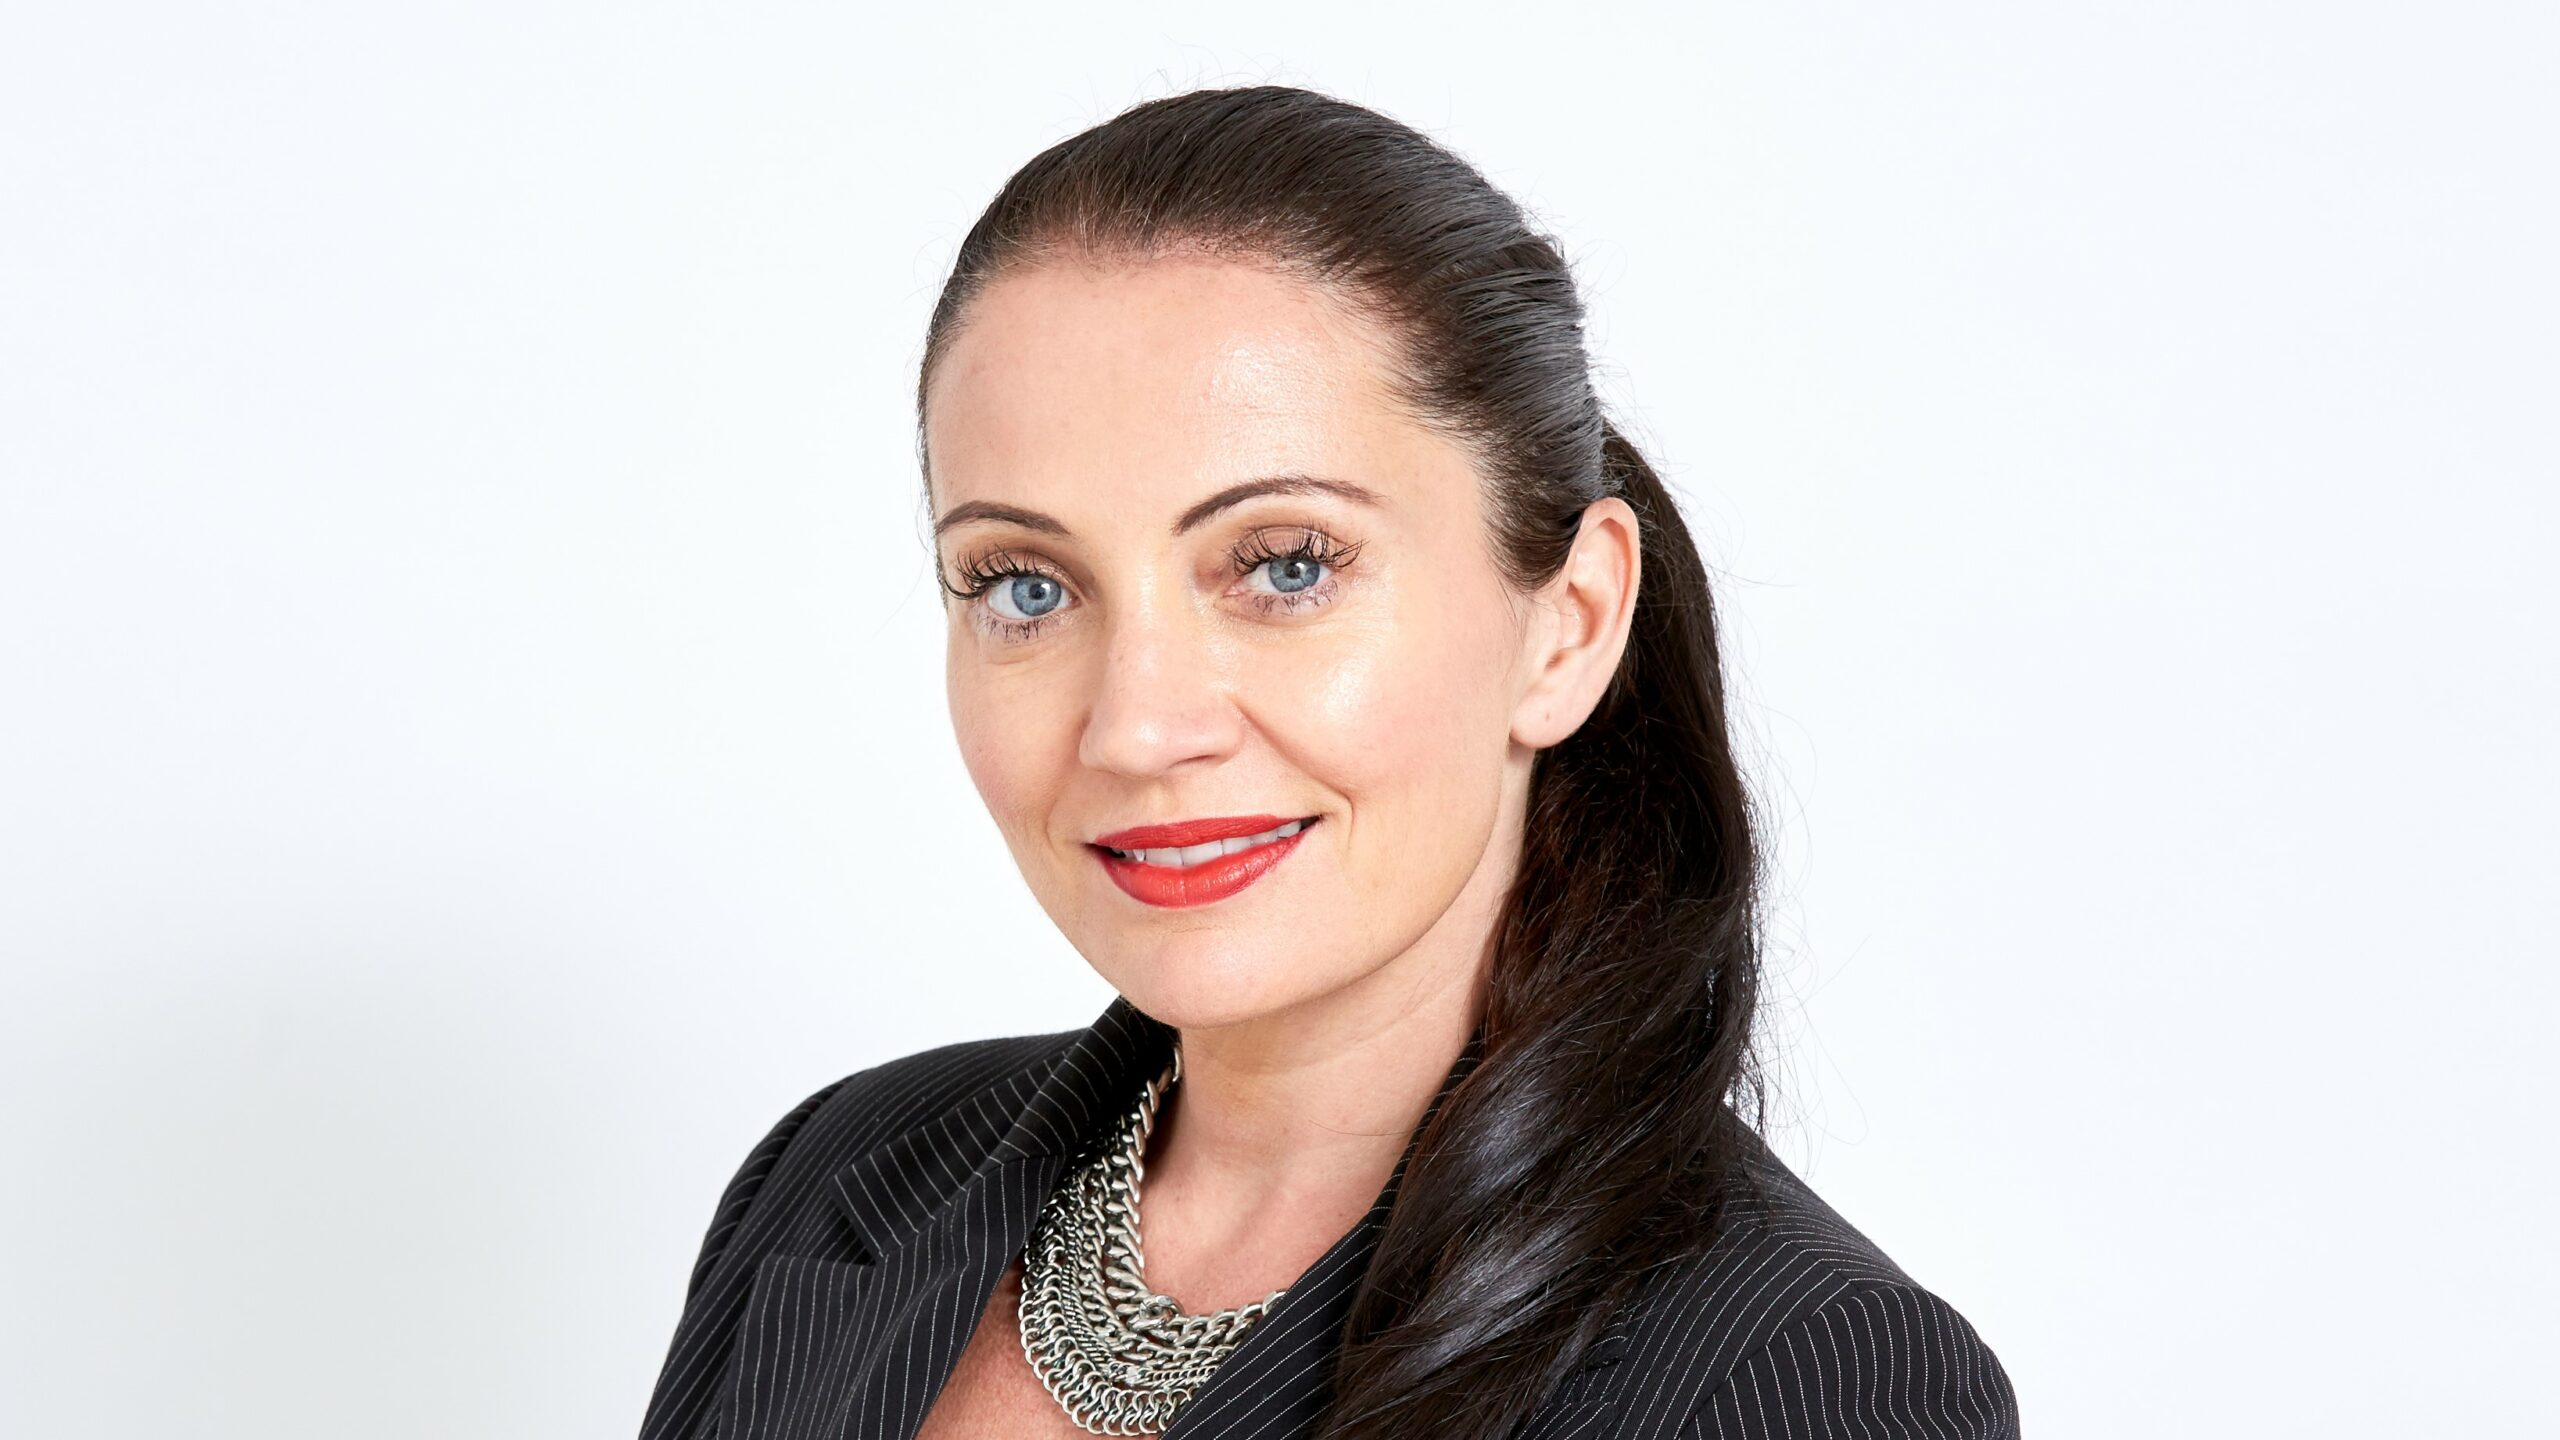 Nicole Bence Appointed Chair of IAB Australia Board